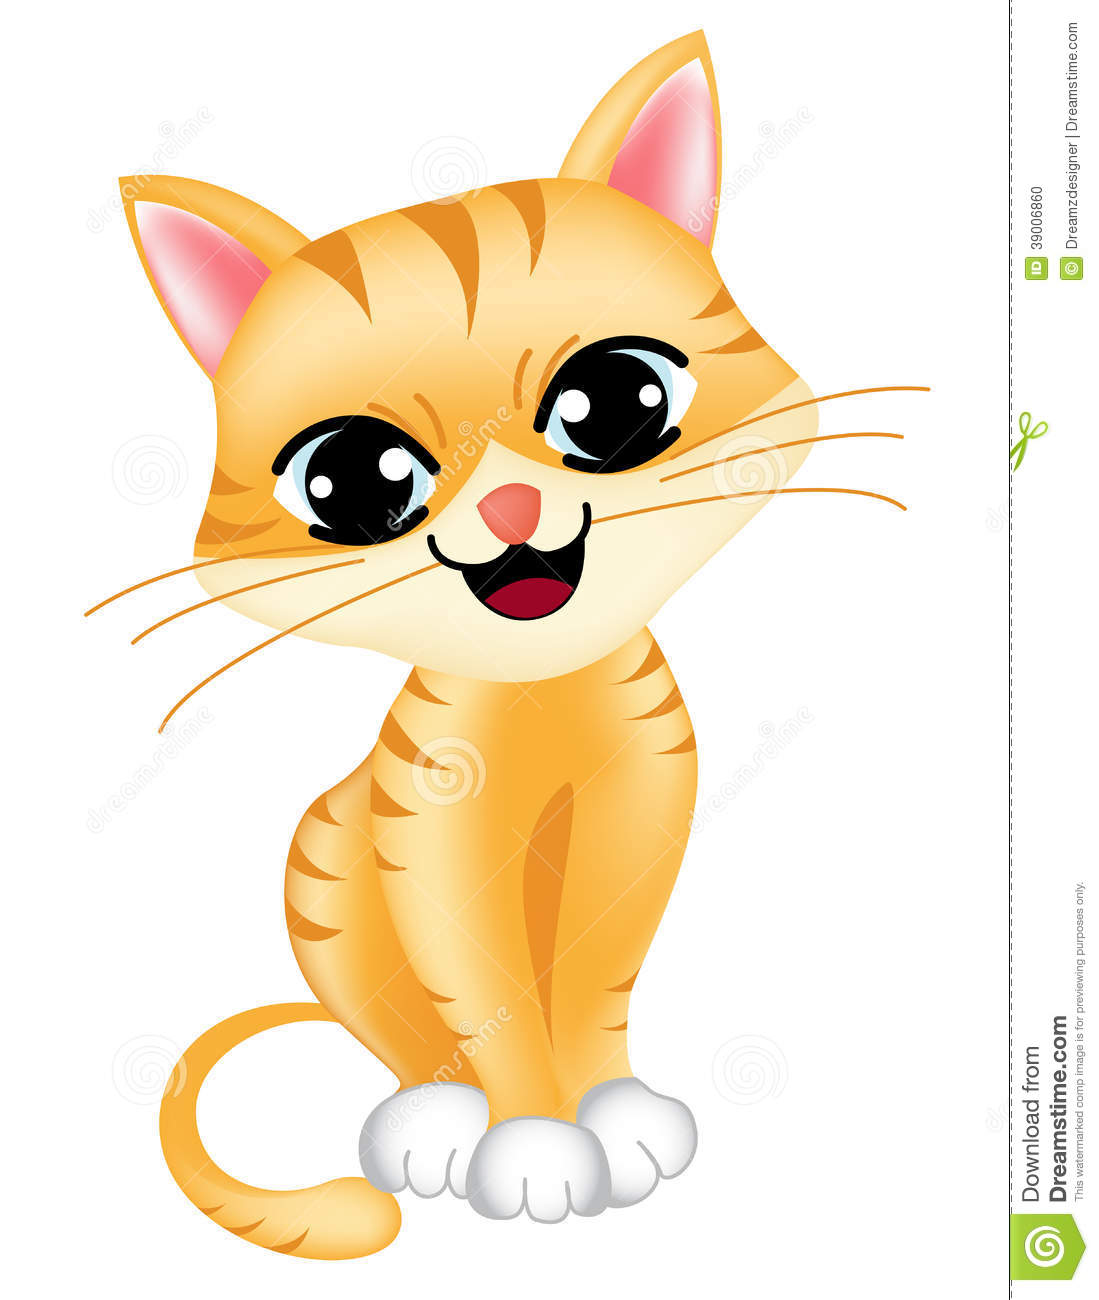 Clipart cute baby cat.